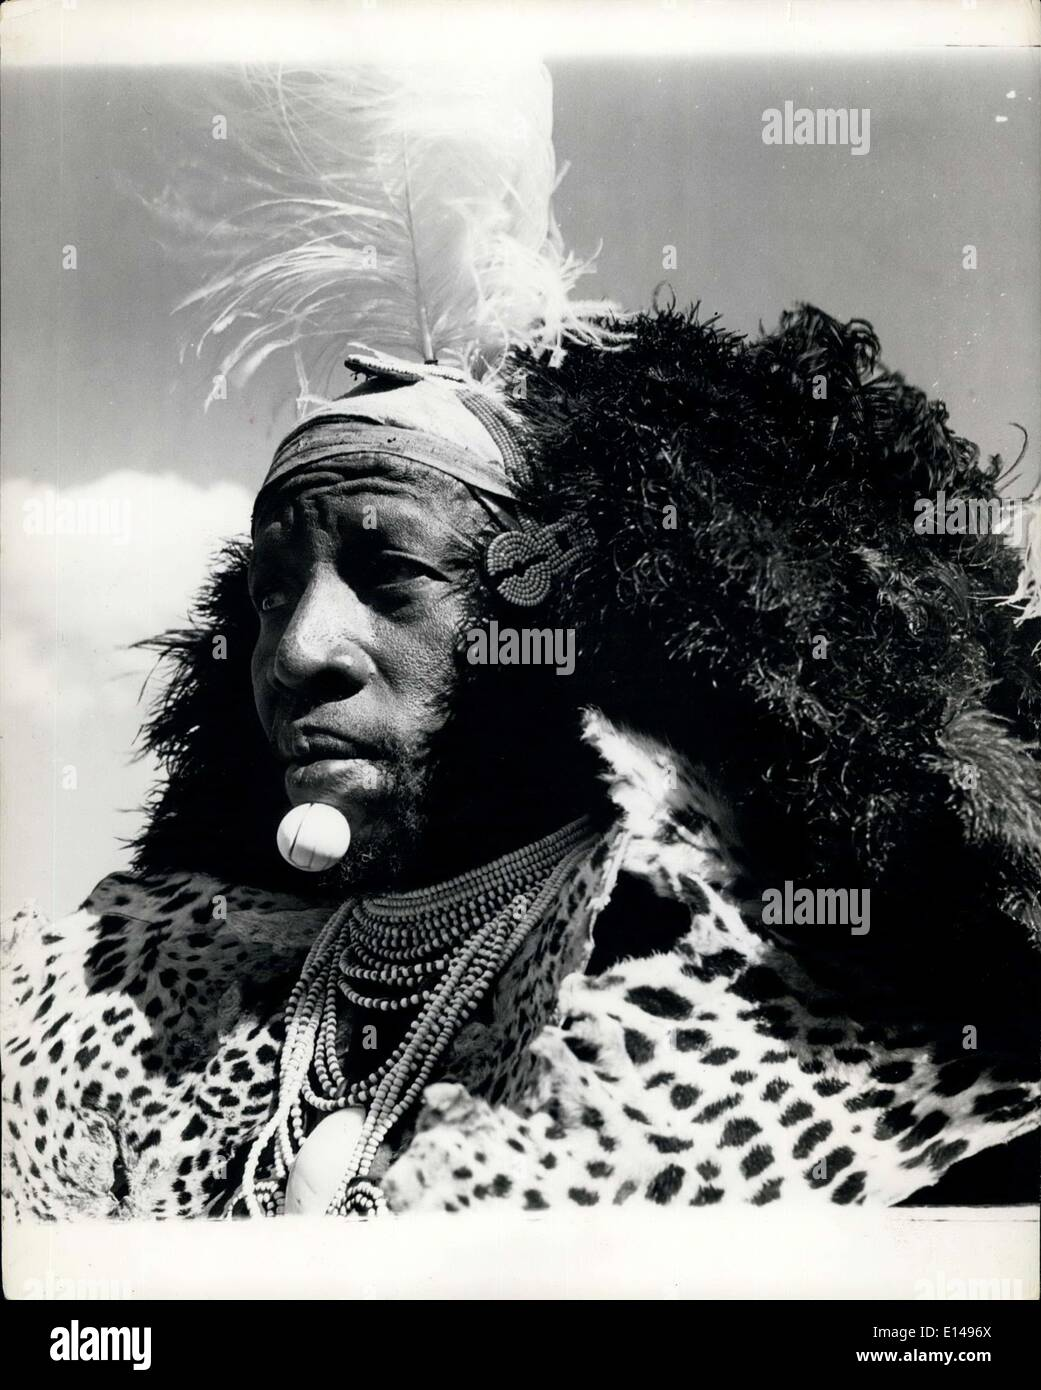 Apr. 17, 2012 - Royal Garden Party At Government House Nairobi: Chief Pel Pel of the Turkana made an impressive figure at the Royal Garden Party. He wears an elaborats headdress of feathers and beads. A leopard skin cape and a billiard ball on his chin. - Stock Image